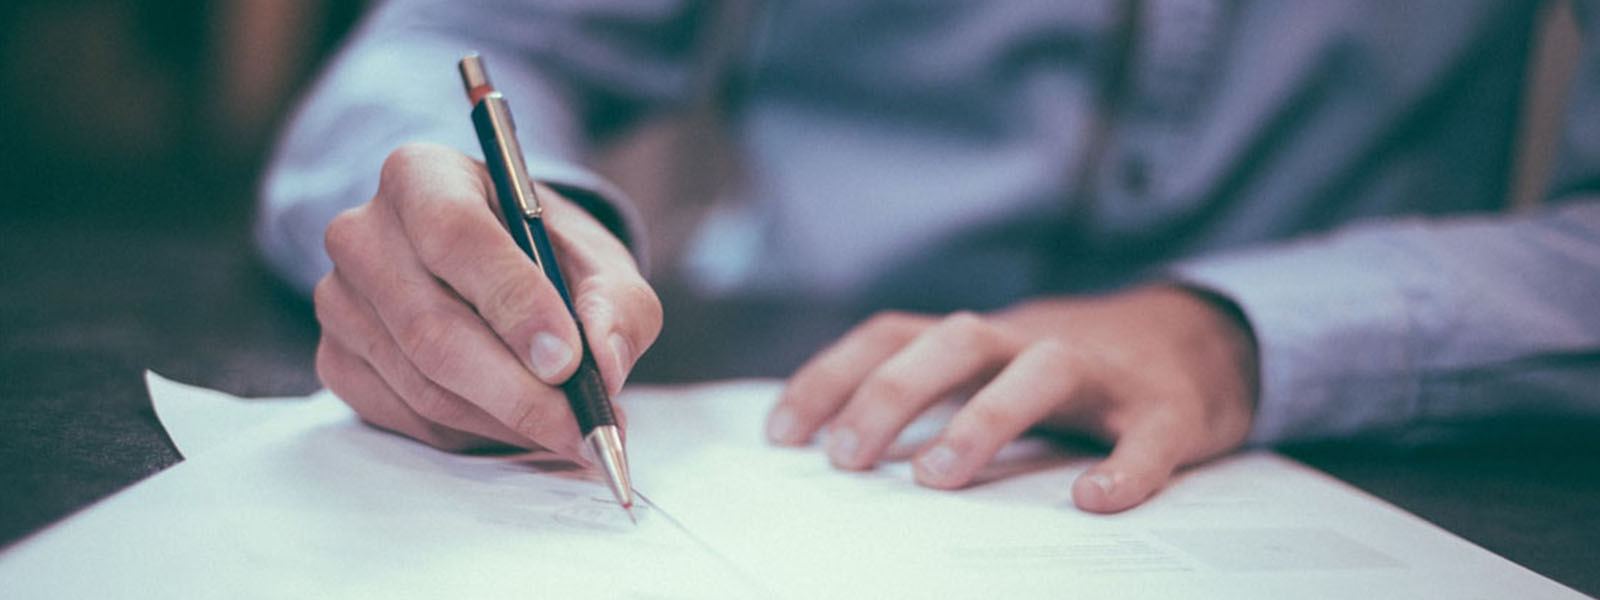 Man writing on paper with a pen